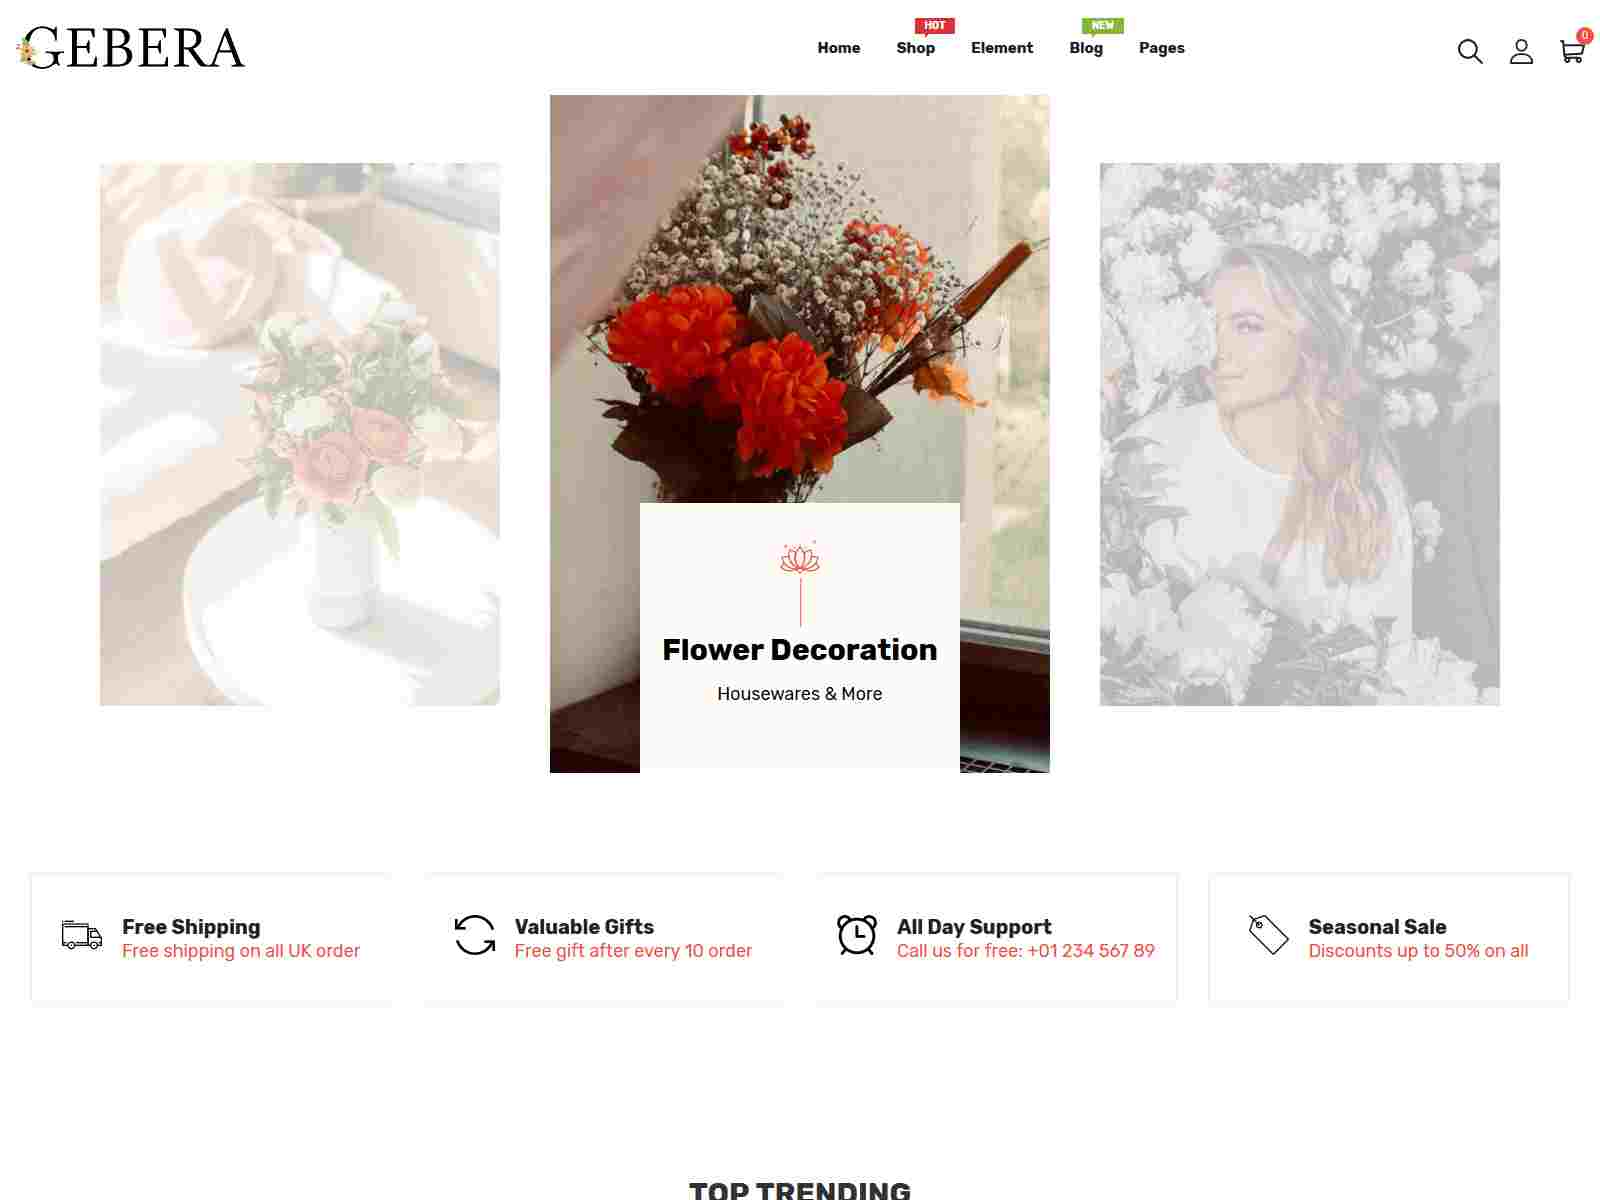 Gerbera - Florist Boutique  and Decoration Store Shopify Theme